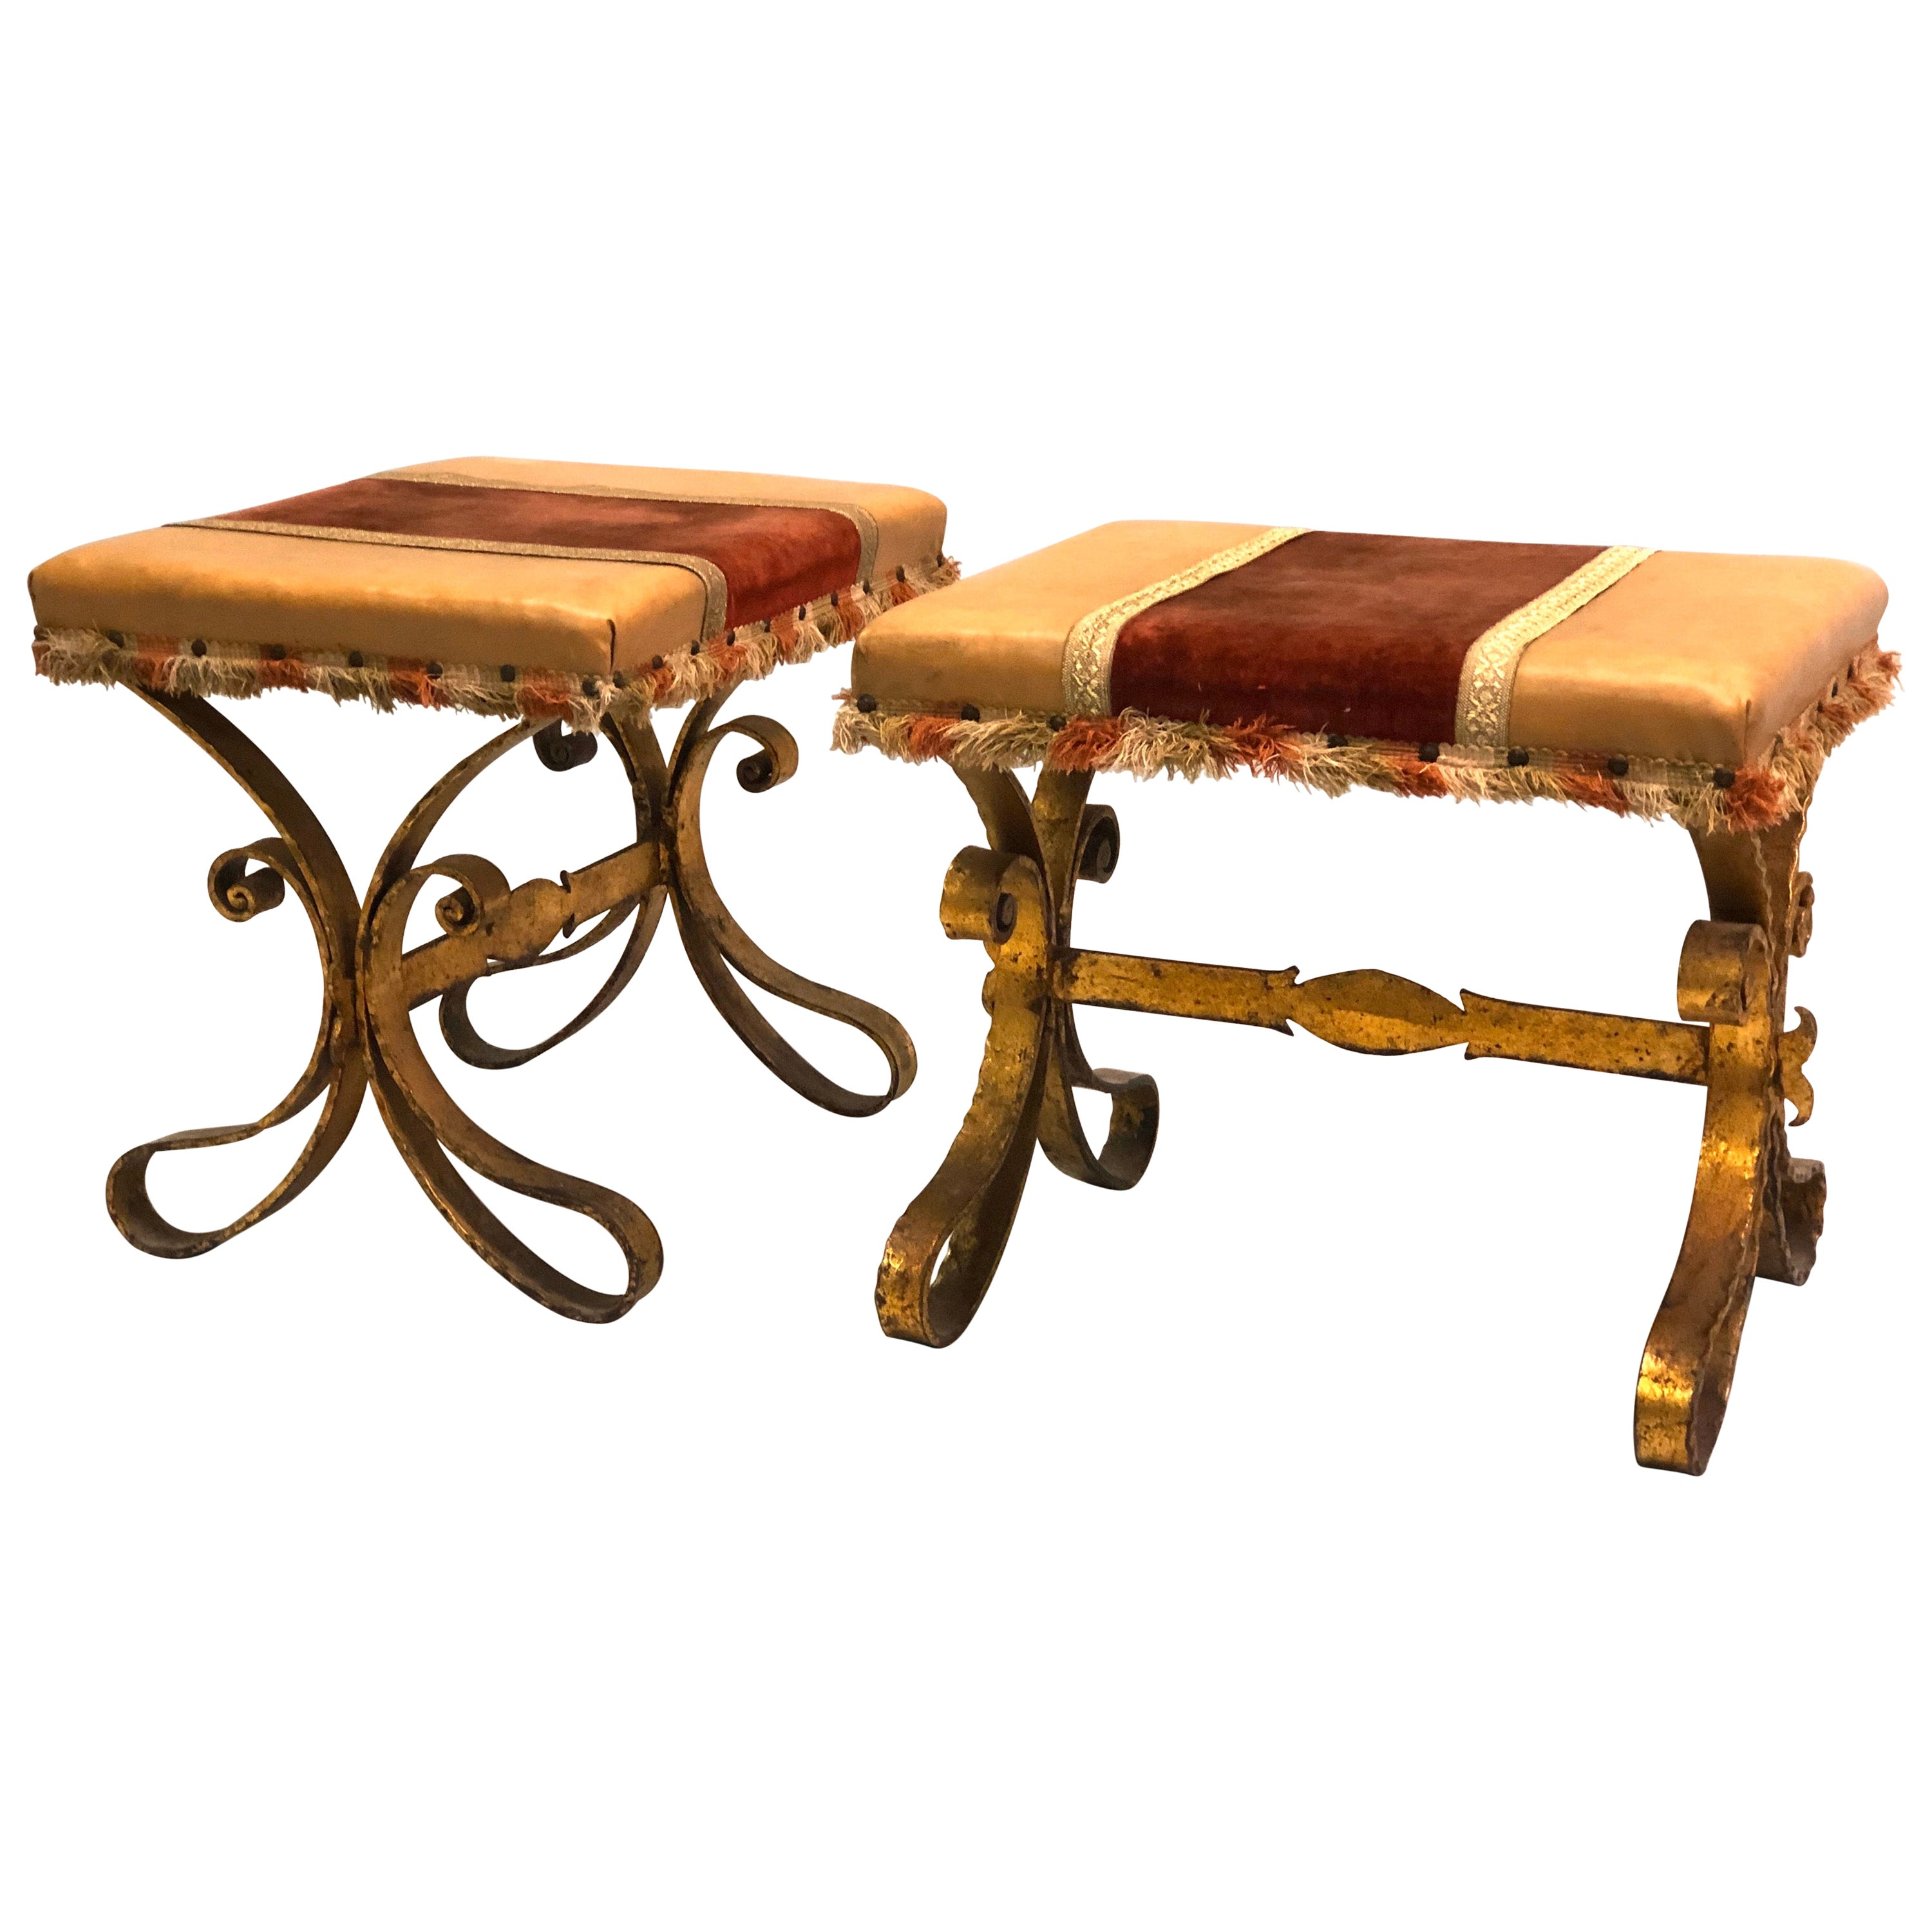 French Midcentury Gilt Wrought Iron and Leather Benches, Gilbert Poillerat, Pair